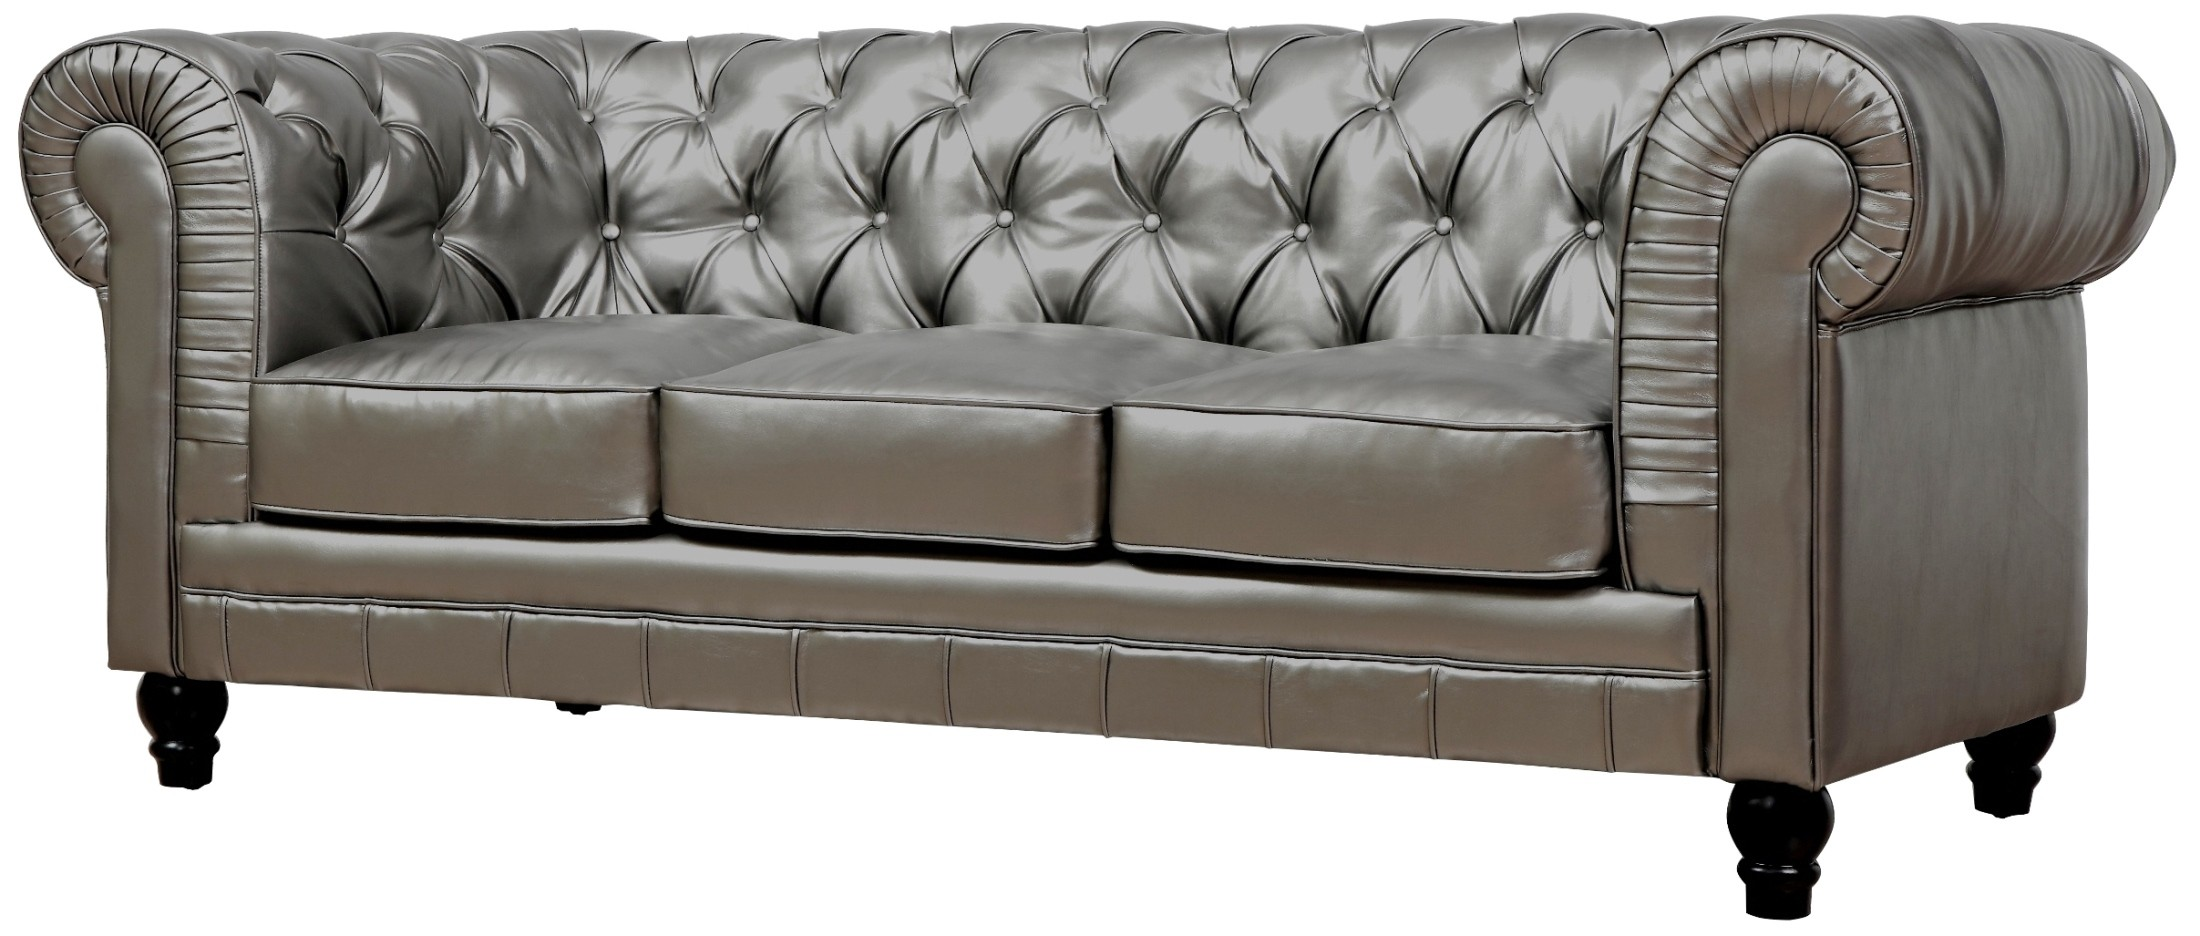 High Quality Zahara Silver Leather Sofa